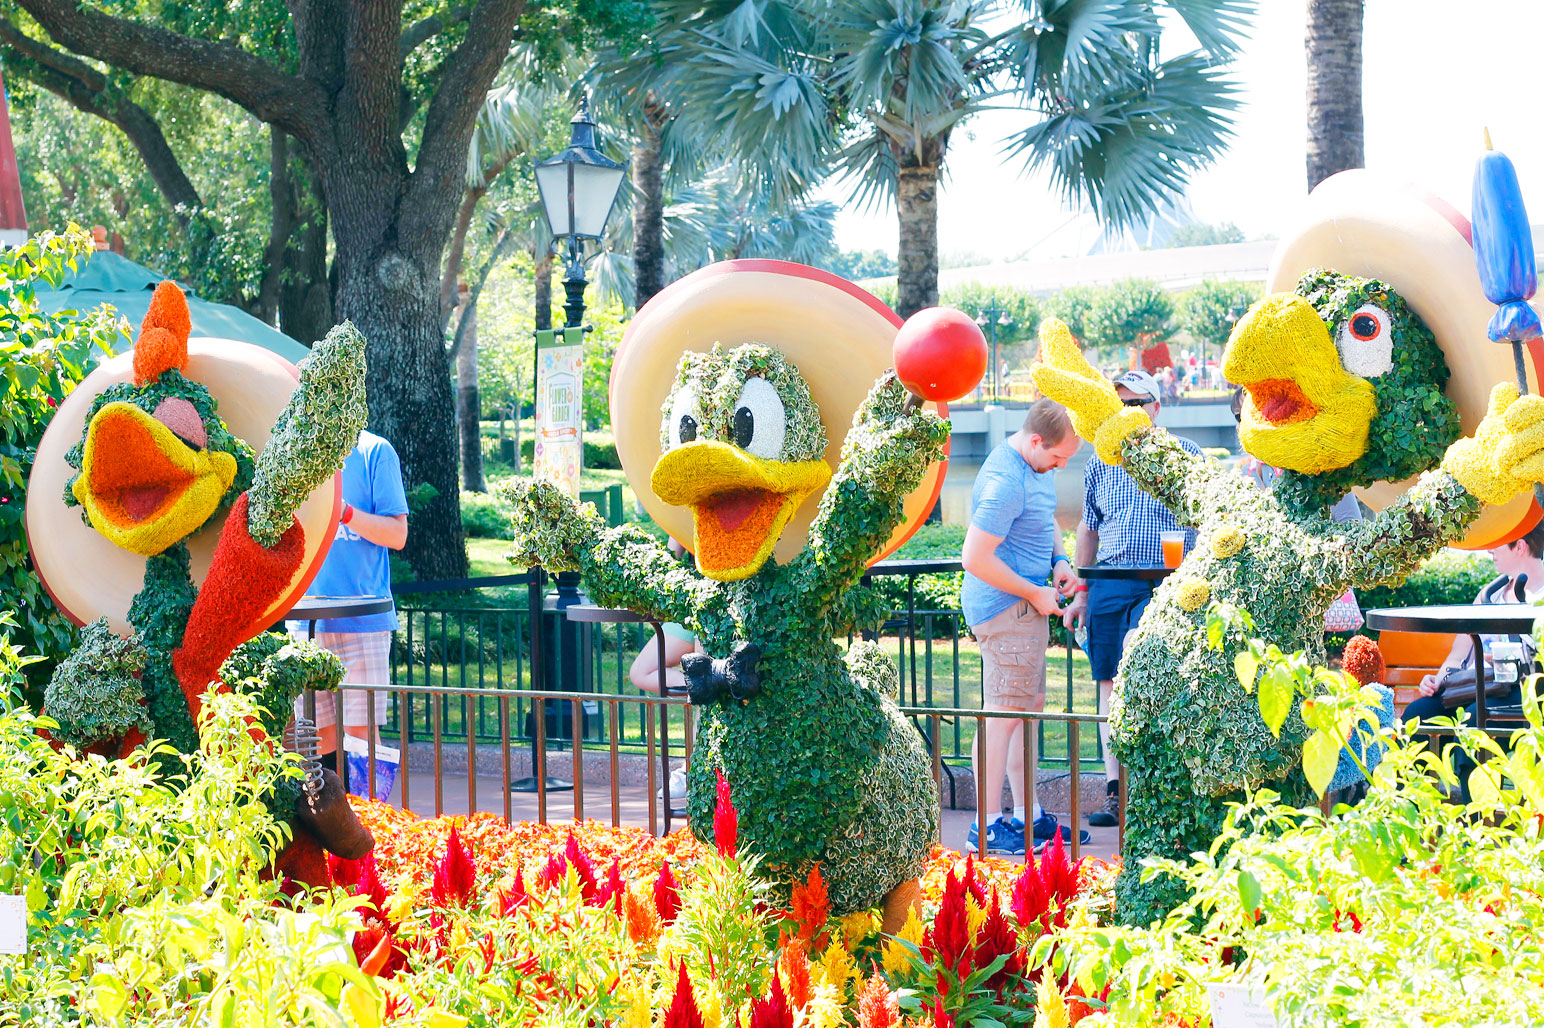 Flower and Garden festival at Epcot is a must see Disney Parks event in 2019!